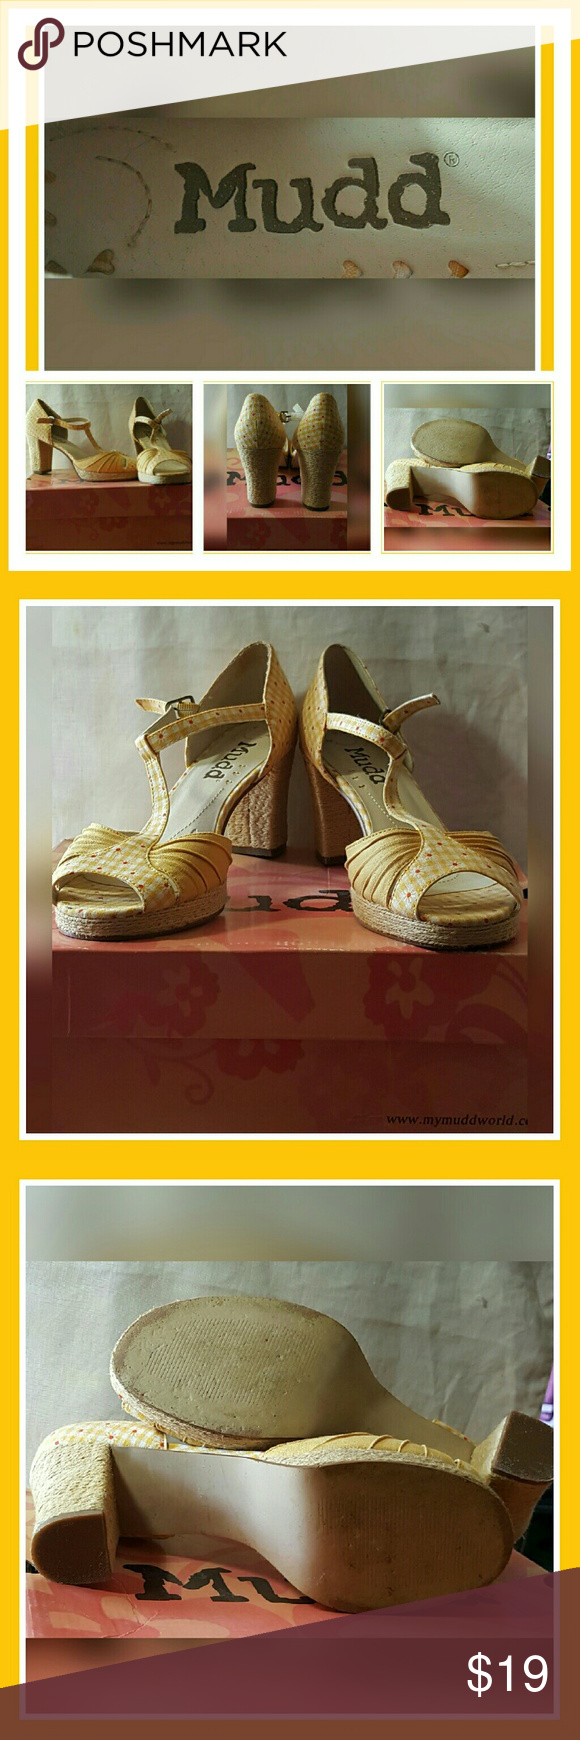 """MUDD CONCHA FABRIC T-STRAP PLATFORM MUDD CONCHA FABRIC T-STRAP PLATFORM  ●PRINTED FABRIC- YELLOW & WHITE PLAID WITH DELICATE DAISY FLOWER WITH RED CENTERS. ●SIZE 9M ●ROUND PEEP TOE ●3-1/2"""" CHUNKY RAFFIA HEEL;  PLATFORM 1/2"""" ●RUBBER SOLE ●IMPORTED Mudd Shoes Heels"""